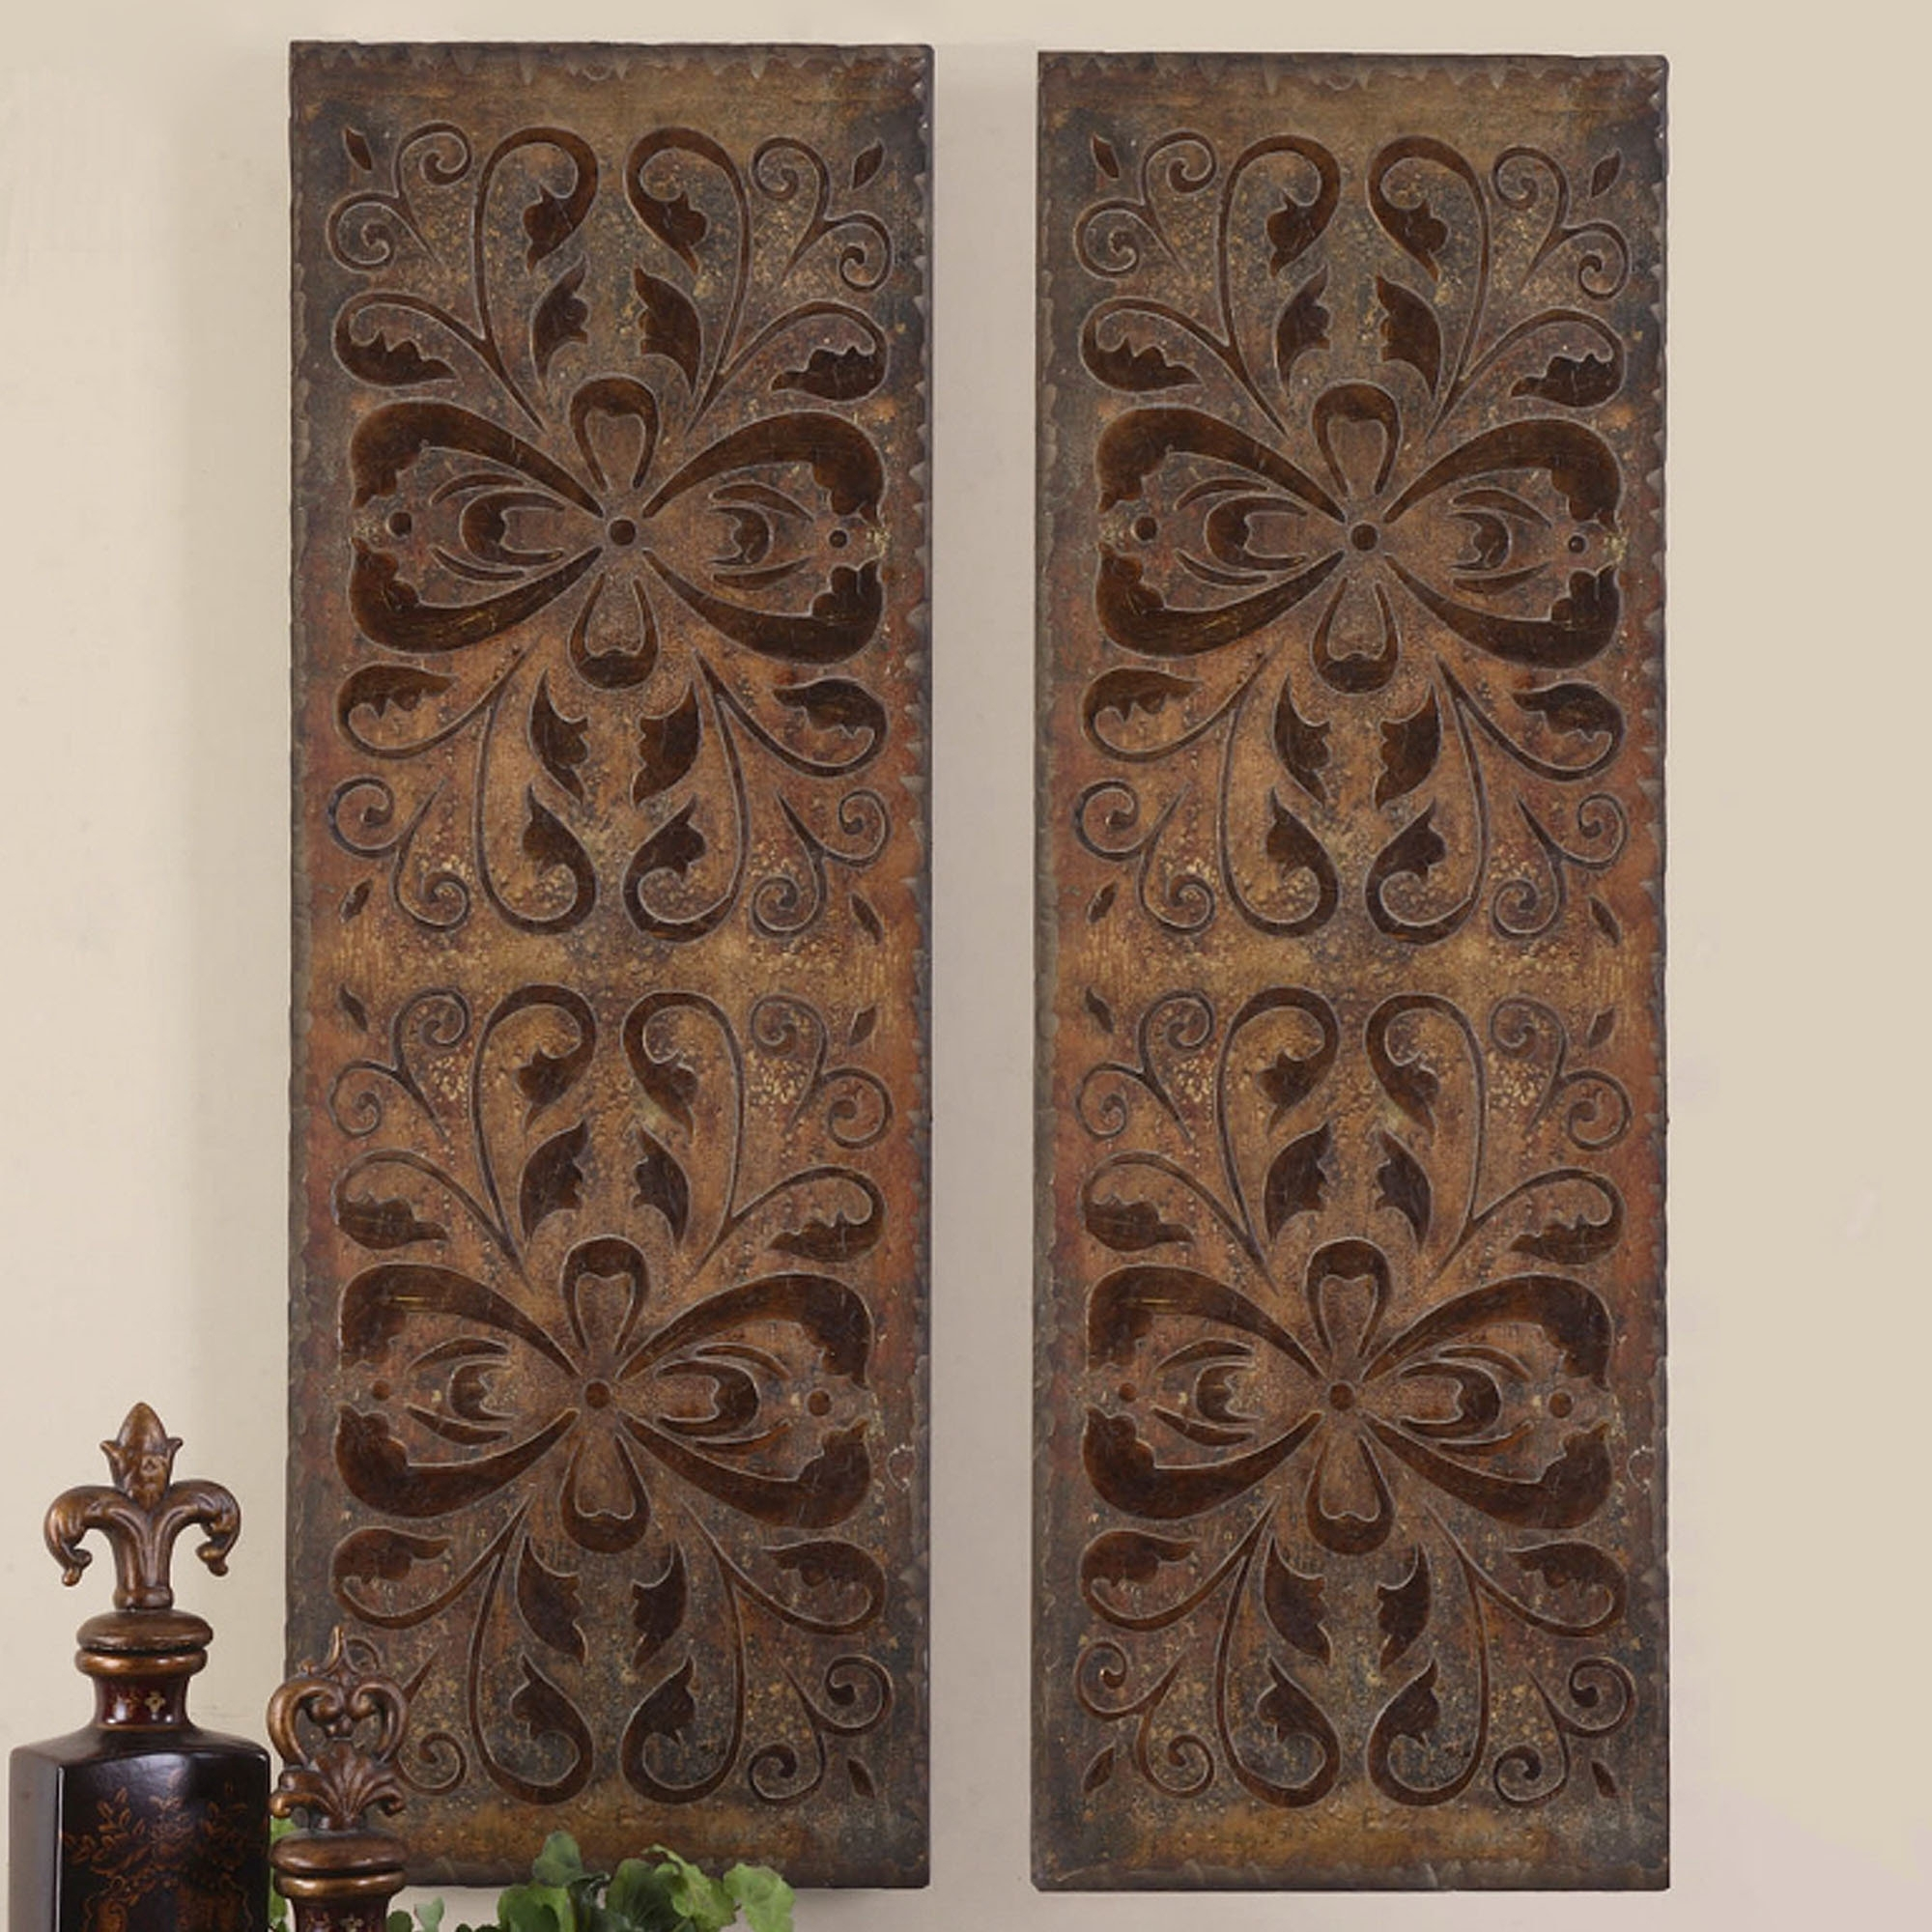 Distressed Wood Panel Wall Decor Wall Art Designs Wall Art Panels Within Most Recent Wall Art Panels (View 8 of 20)